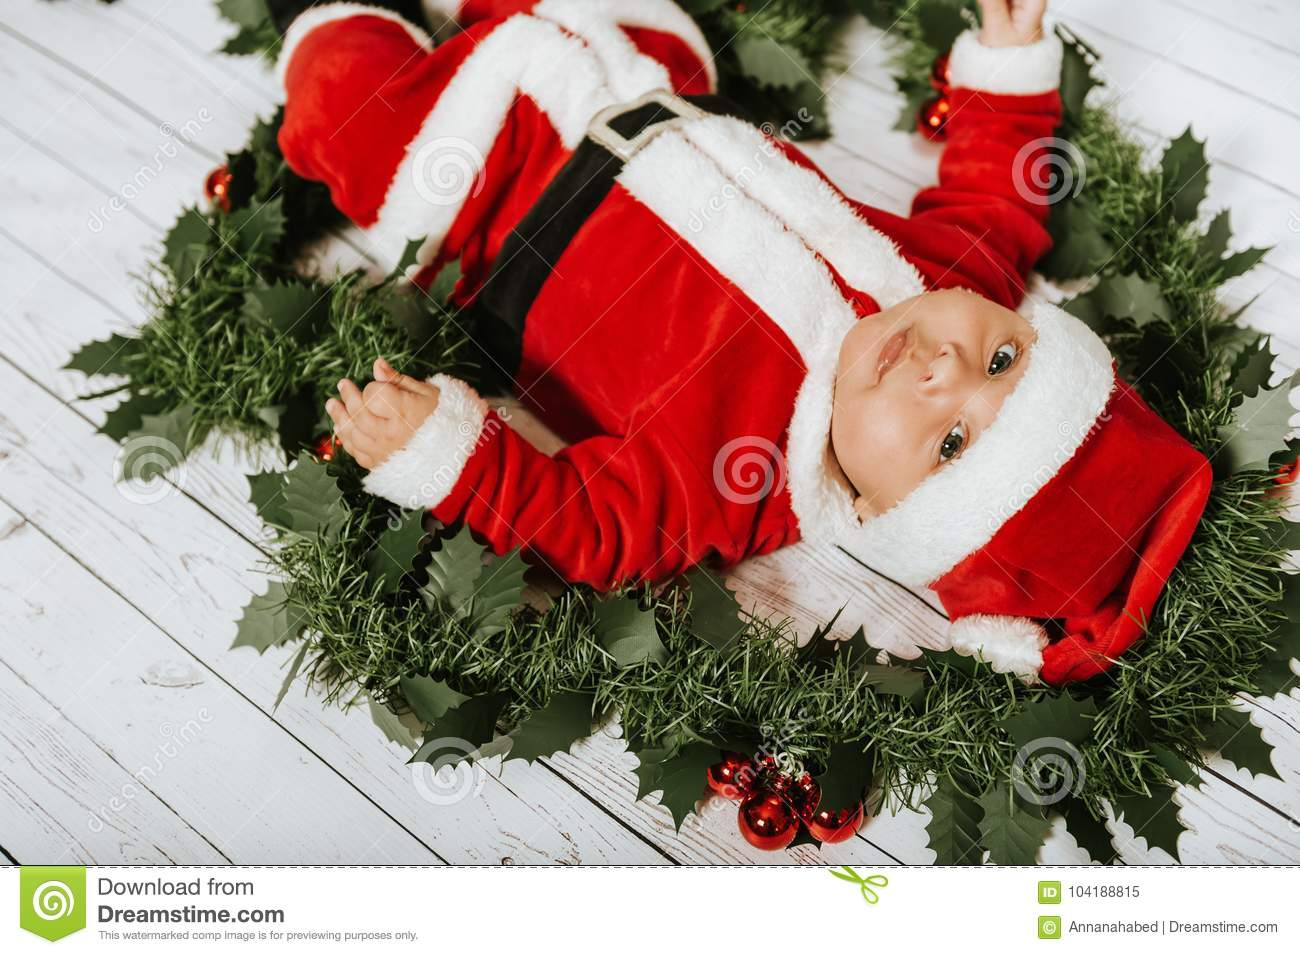 678982a80472 Studio shot of adorable baby boy wearing Santa Claus` outfit, lying on white  background in Christmas decoration, top view